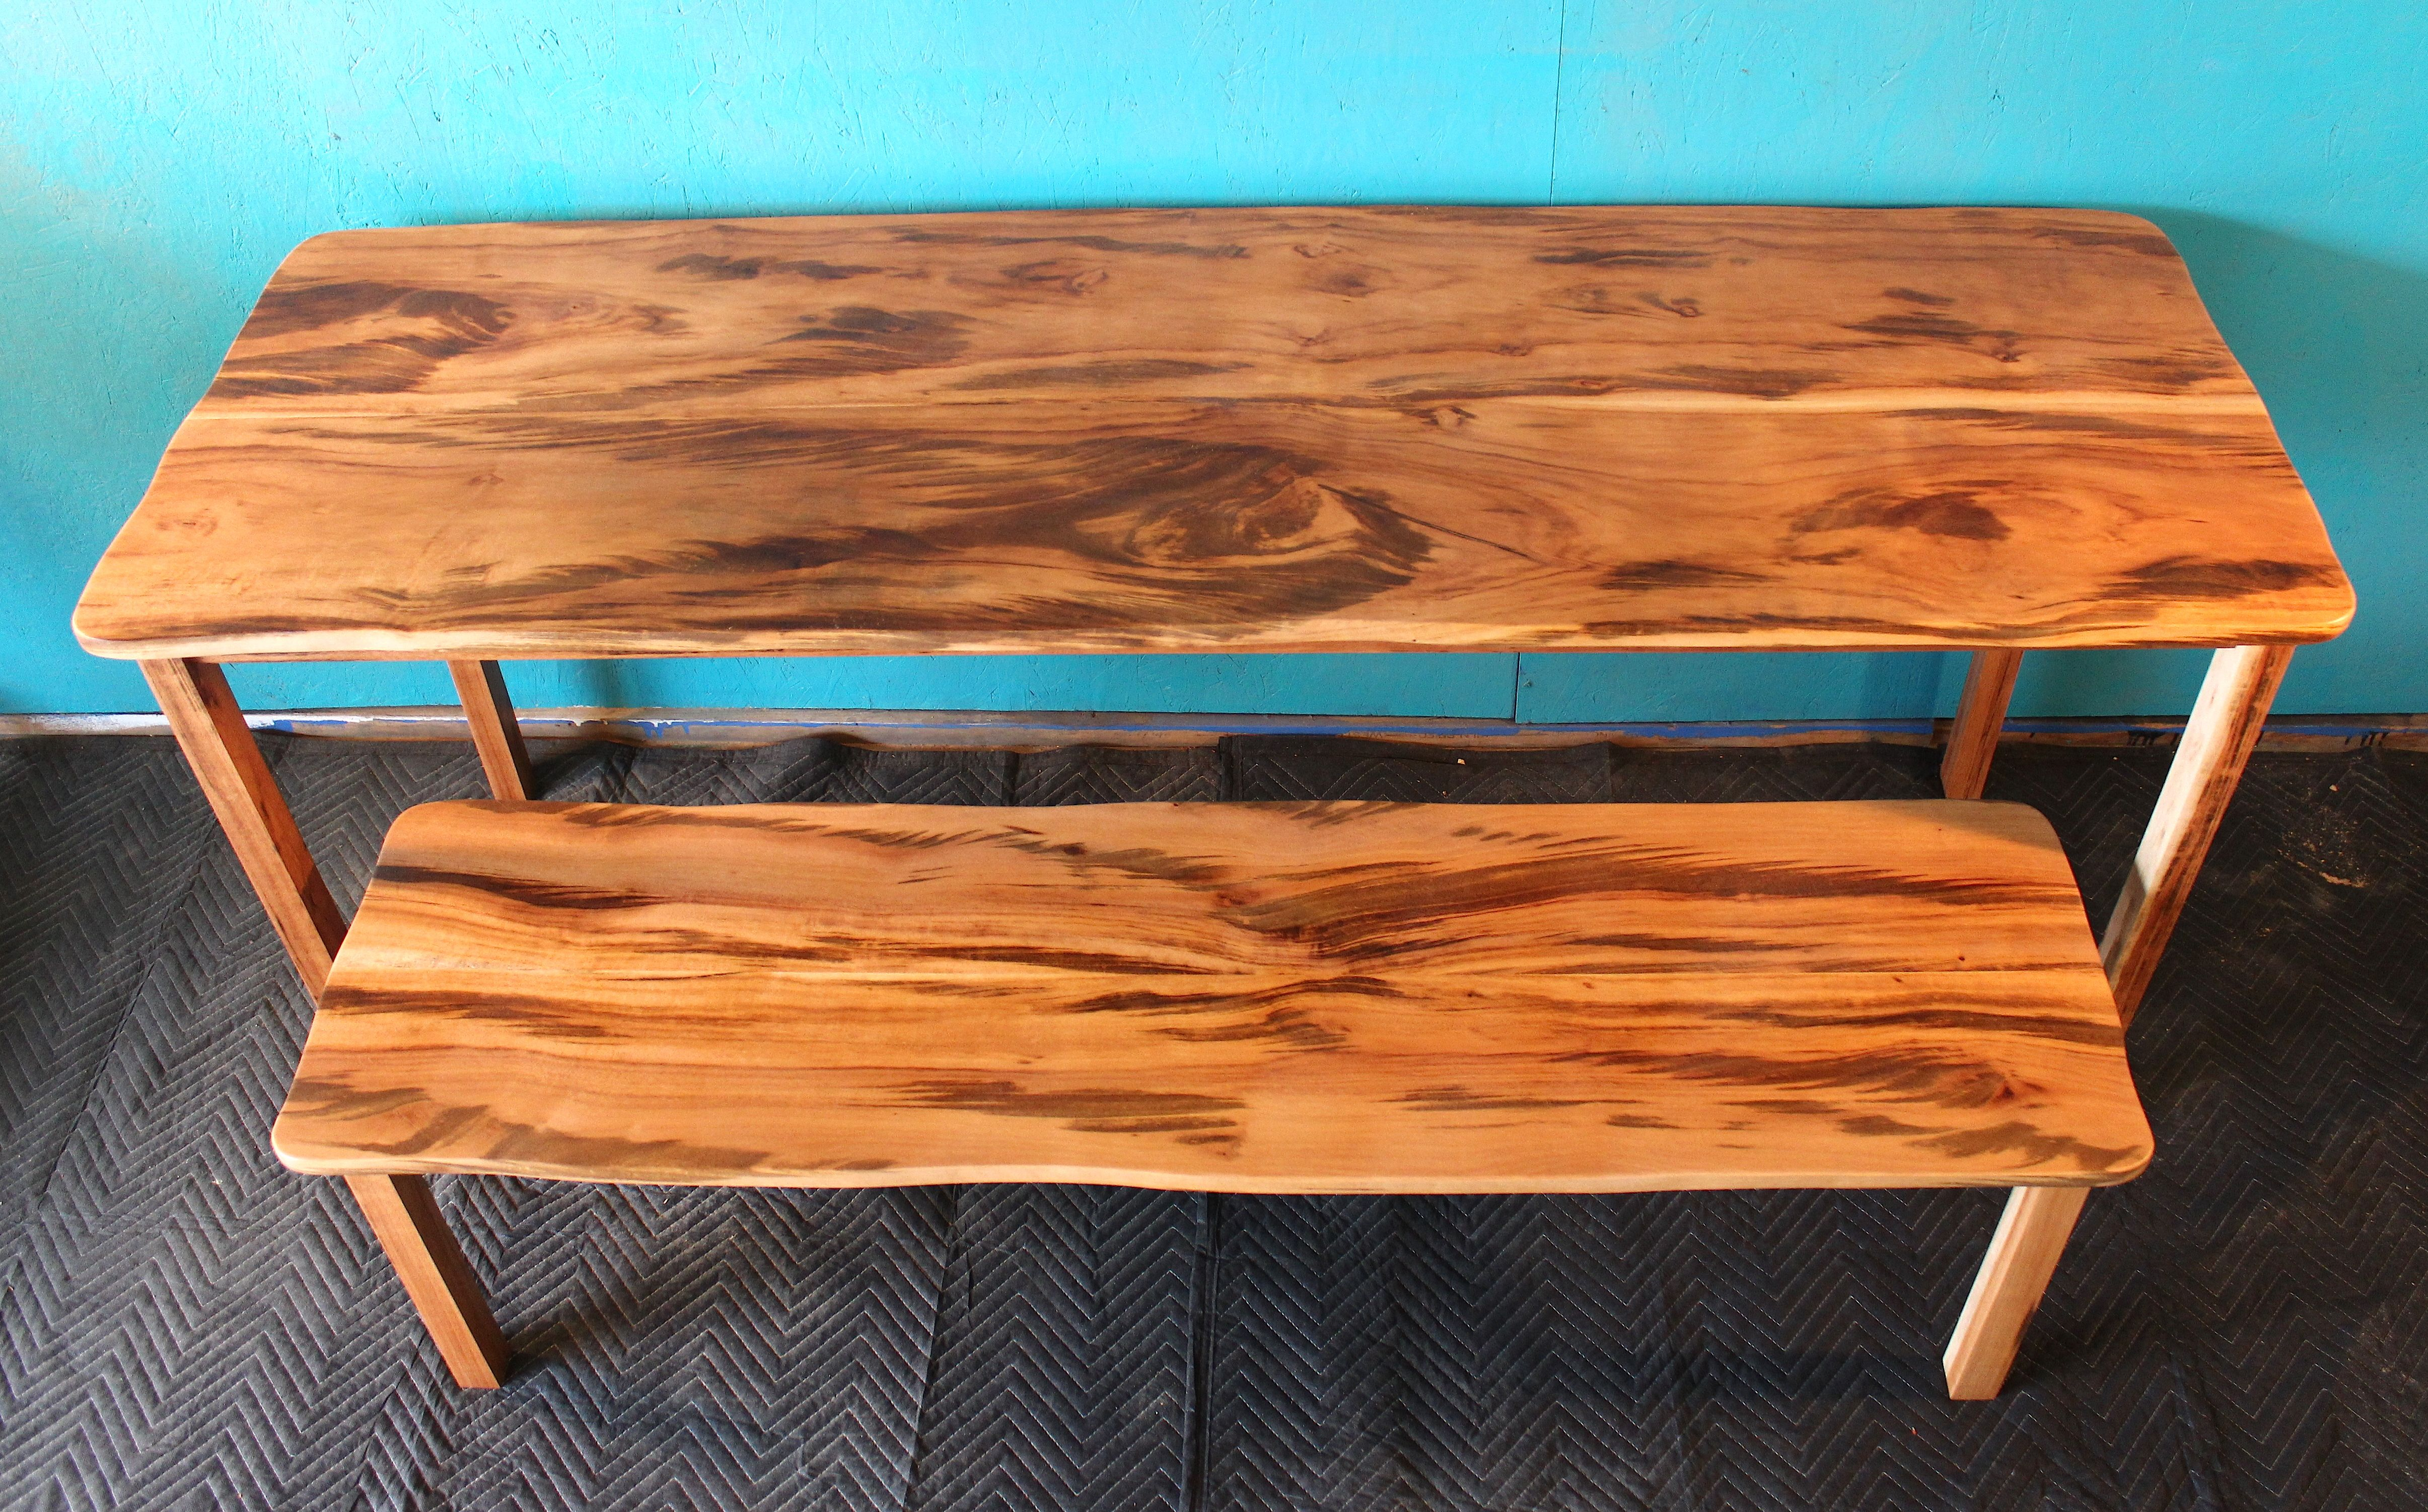 Hand Made Tiger Wood Dining Table With Matching Bench In Live Edge